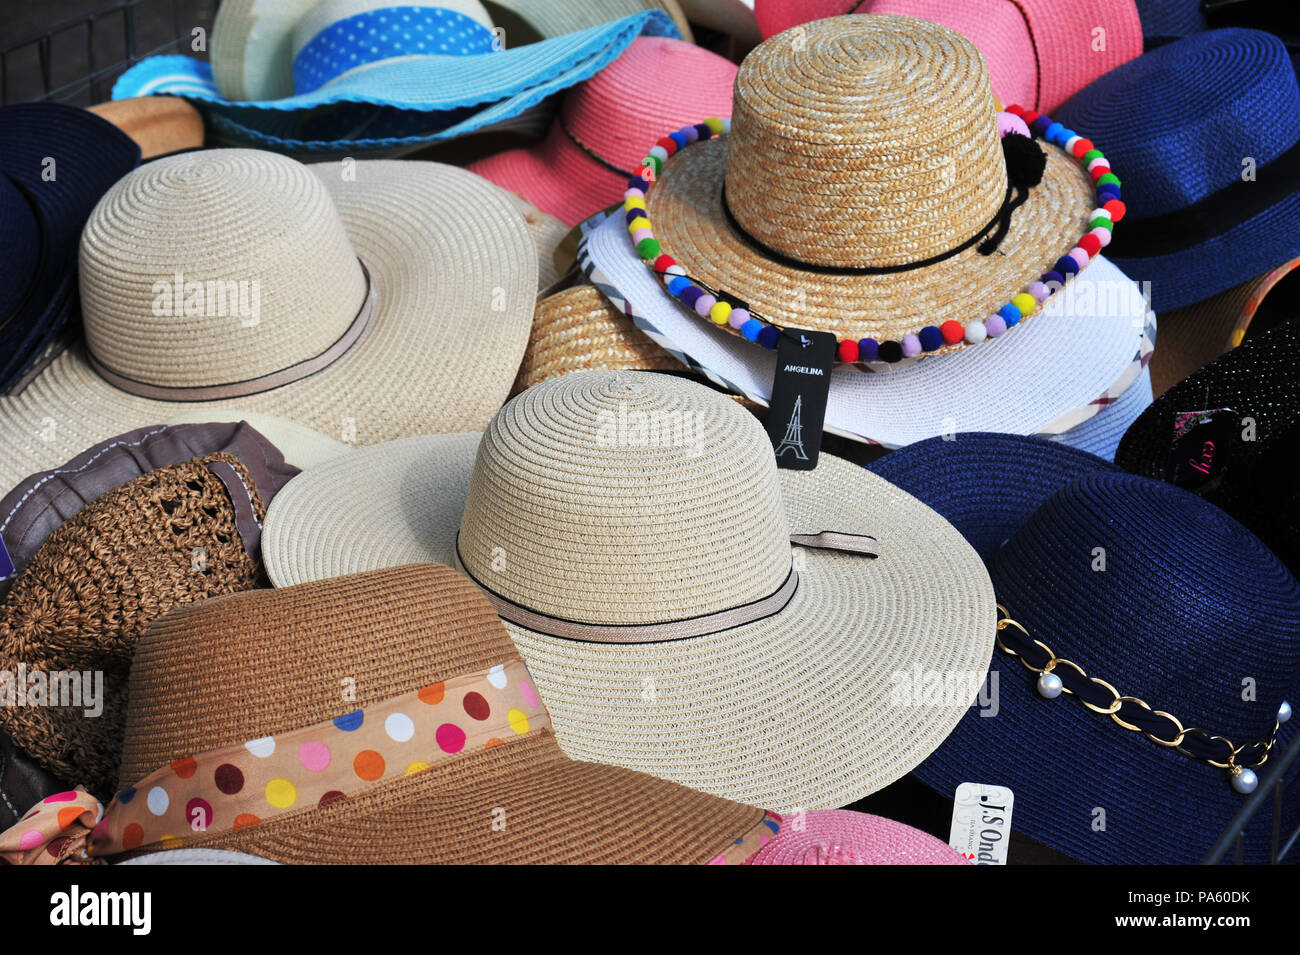 f4544603dd8 Selection of Women s Hats for sale and on display on sale at a market held  each